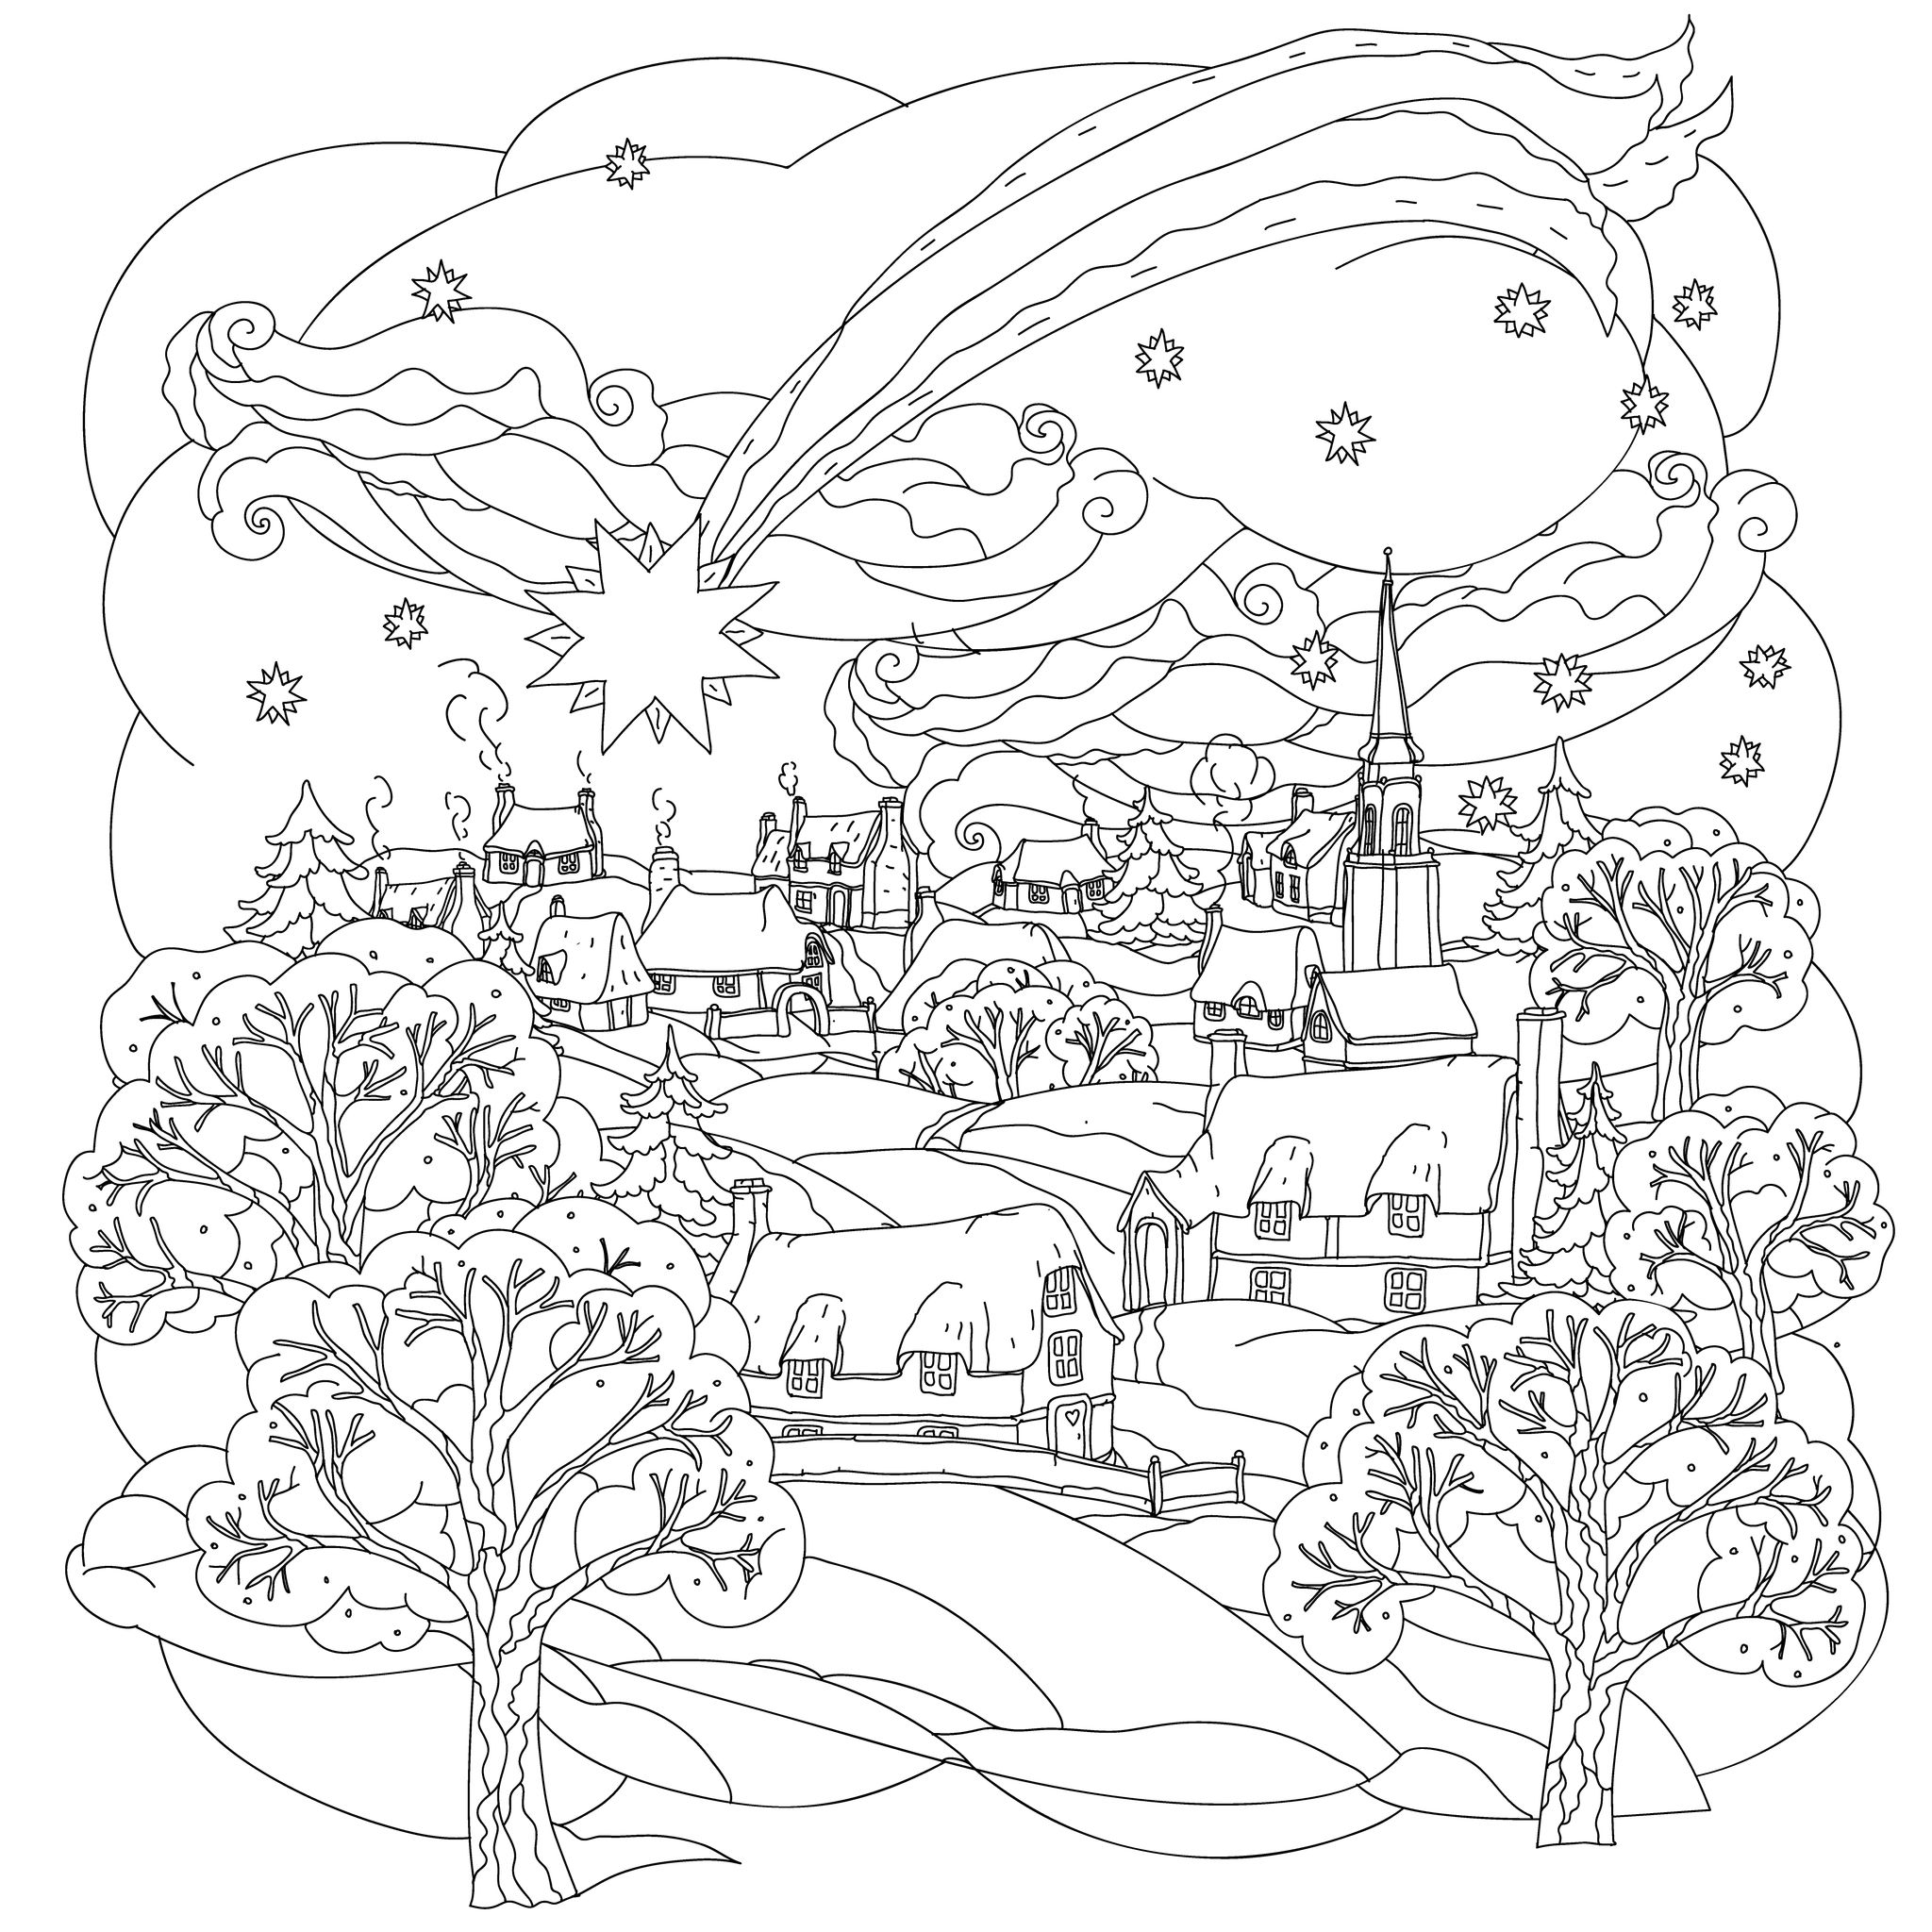 coloring pages of adults - christmas coloring pages for adults best coloring pages